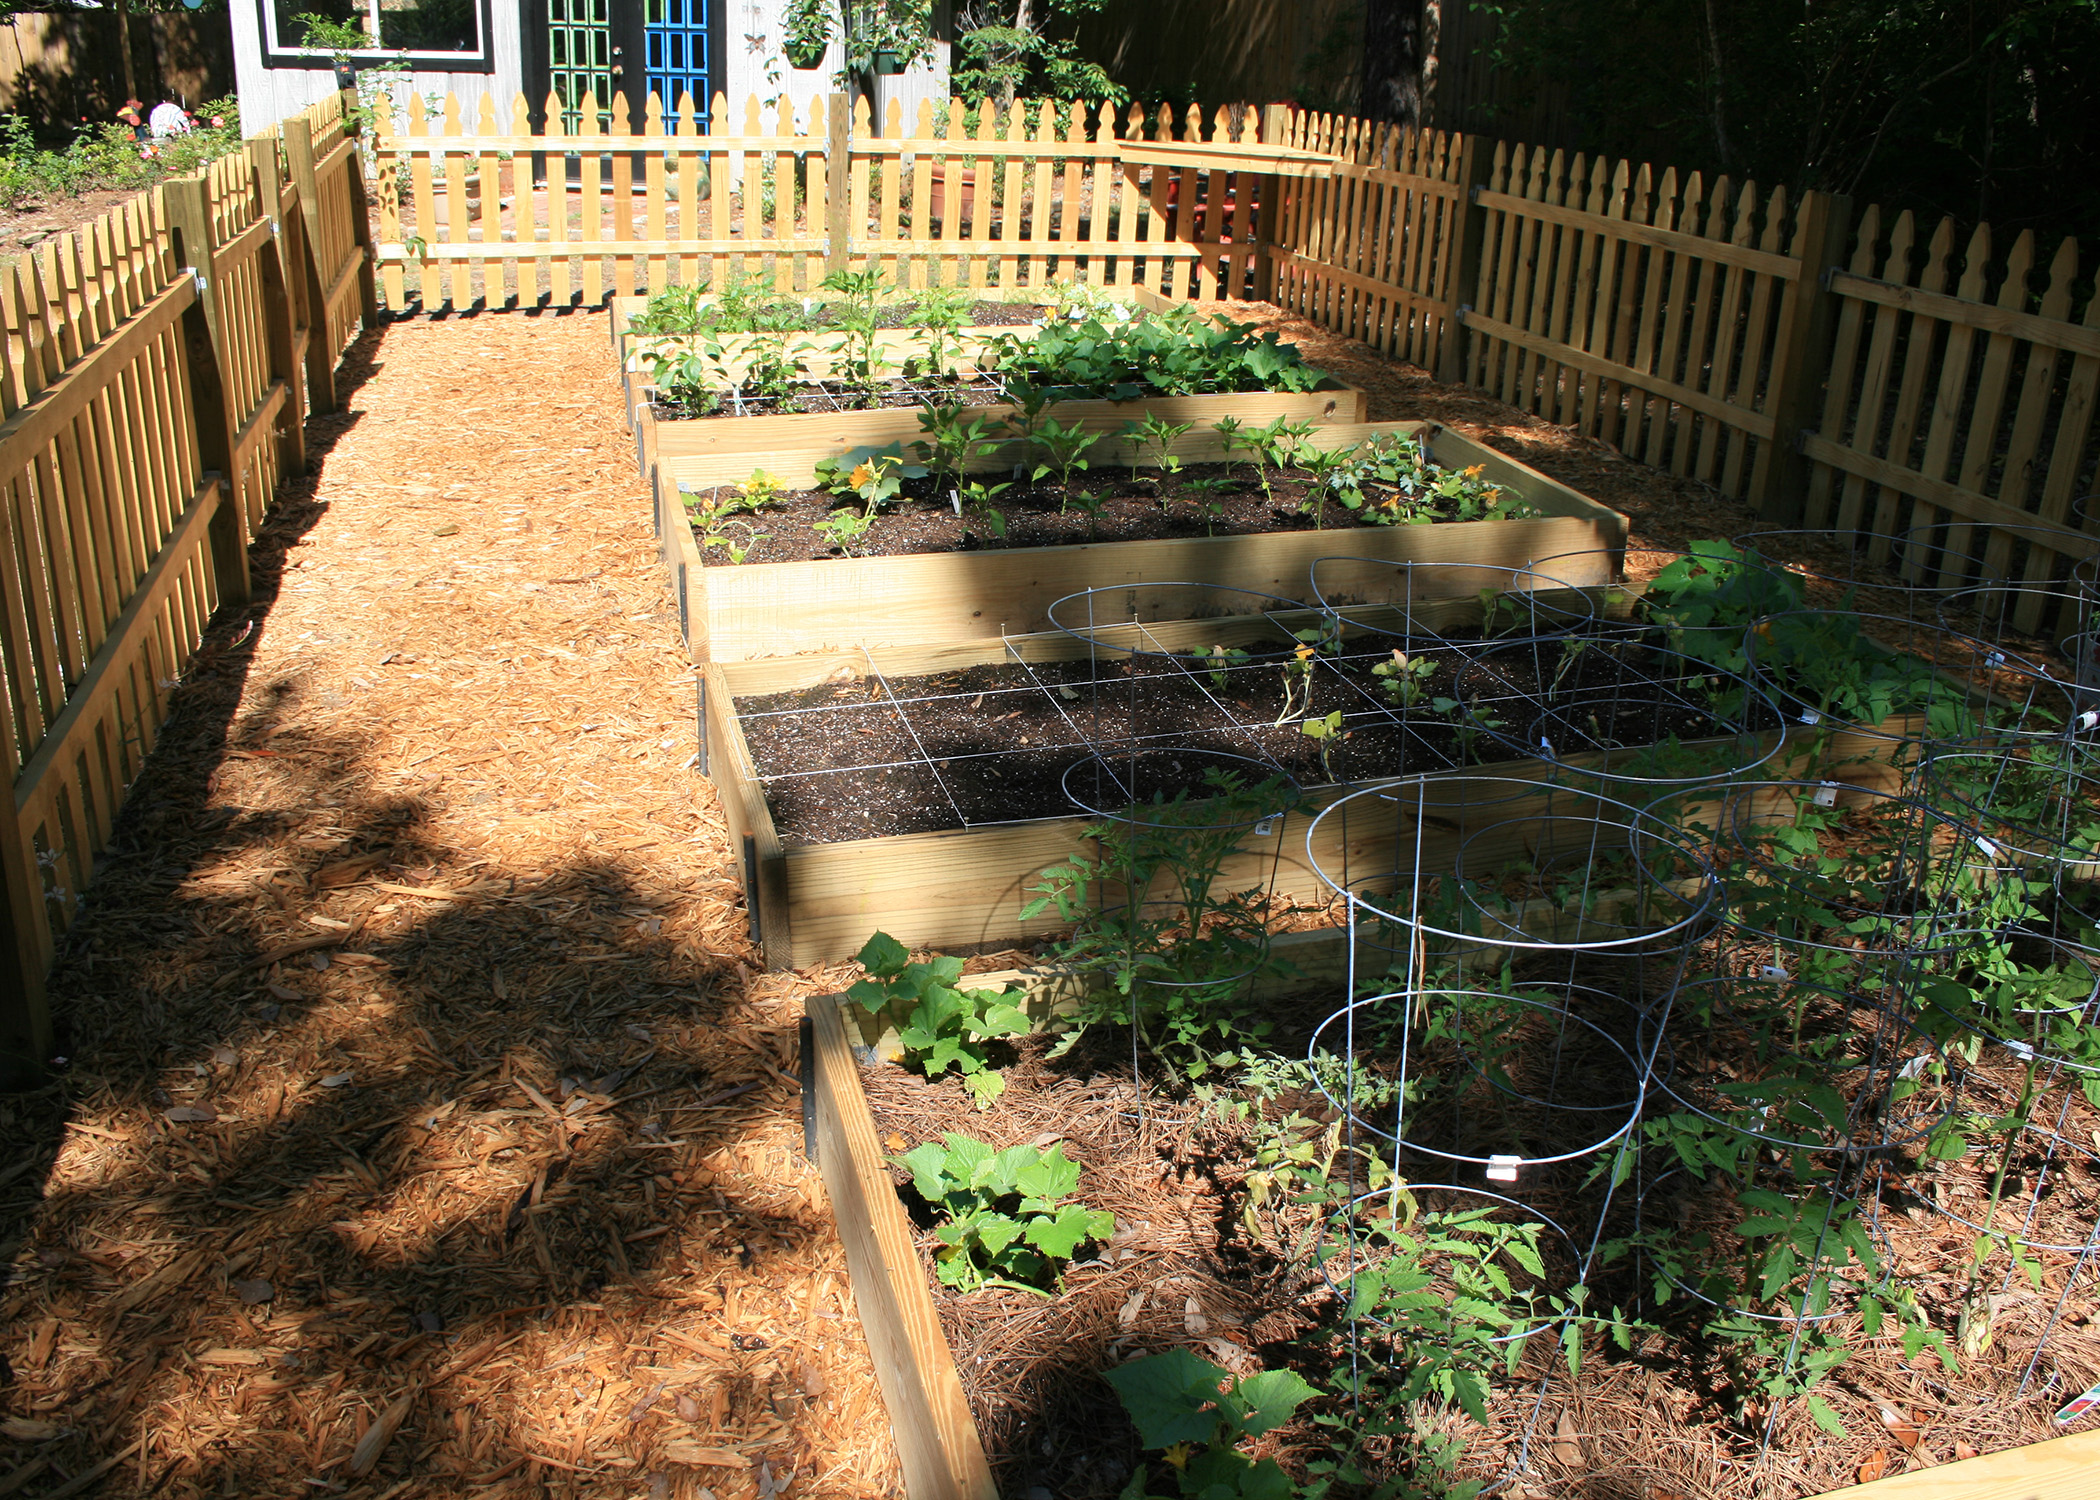 Adding Hardscape Materials Such As Treated Lumber To Build Sides Keeps  Raised Bed Gardens Looking